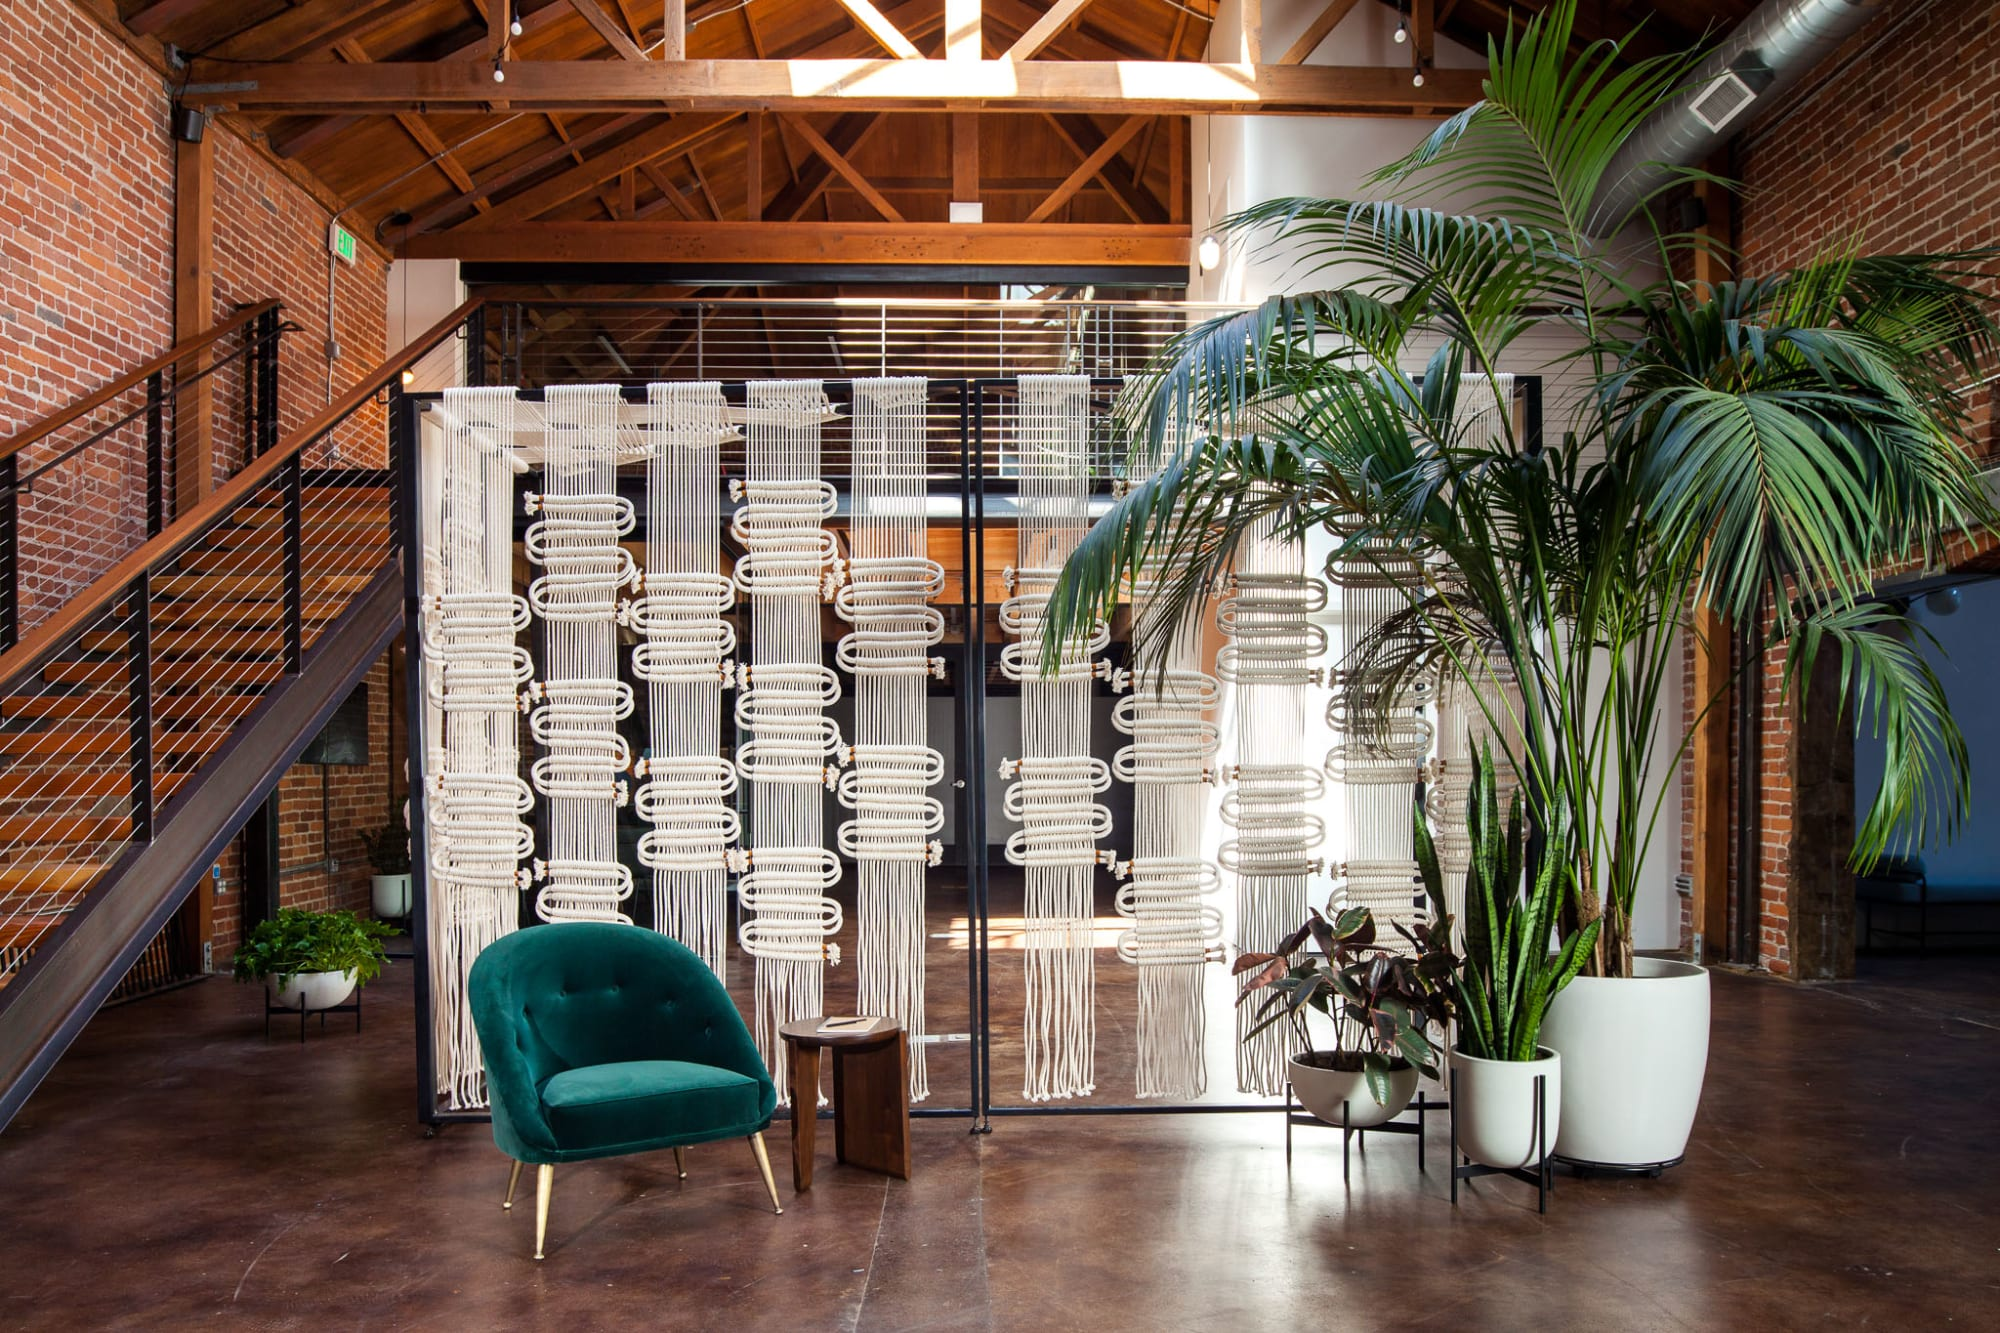 Rope Frameworks by Windy Chien, Sculptures at Combine, Office